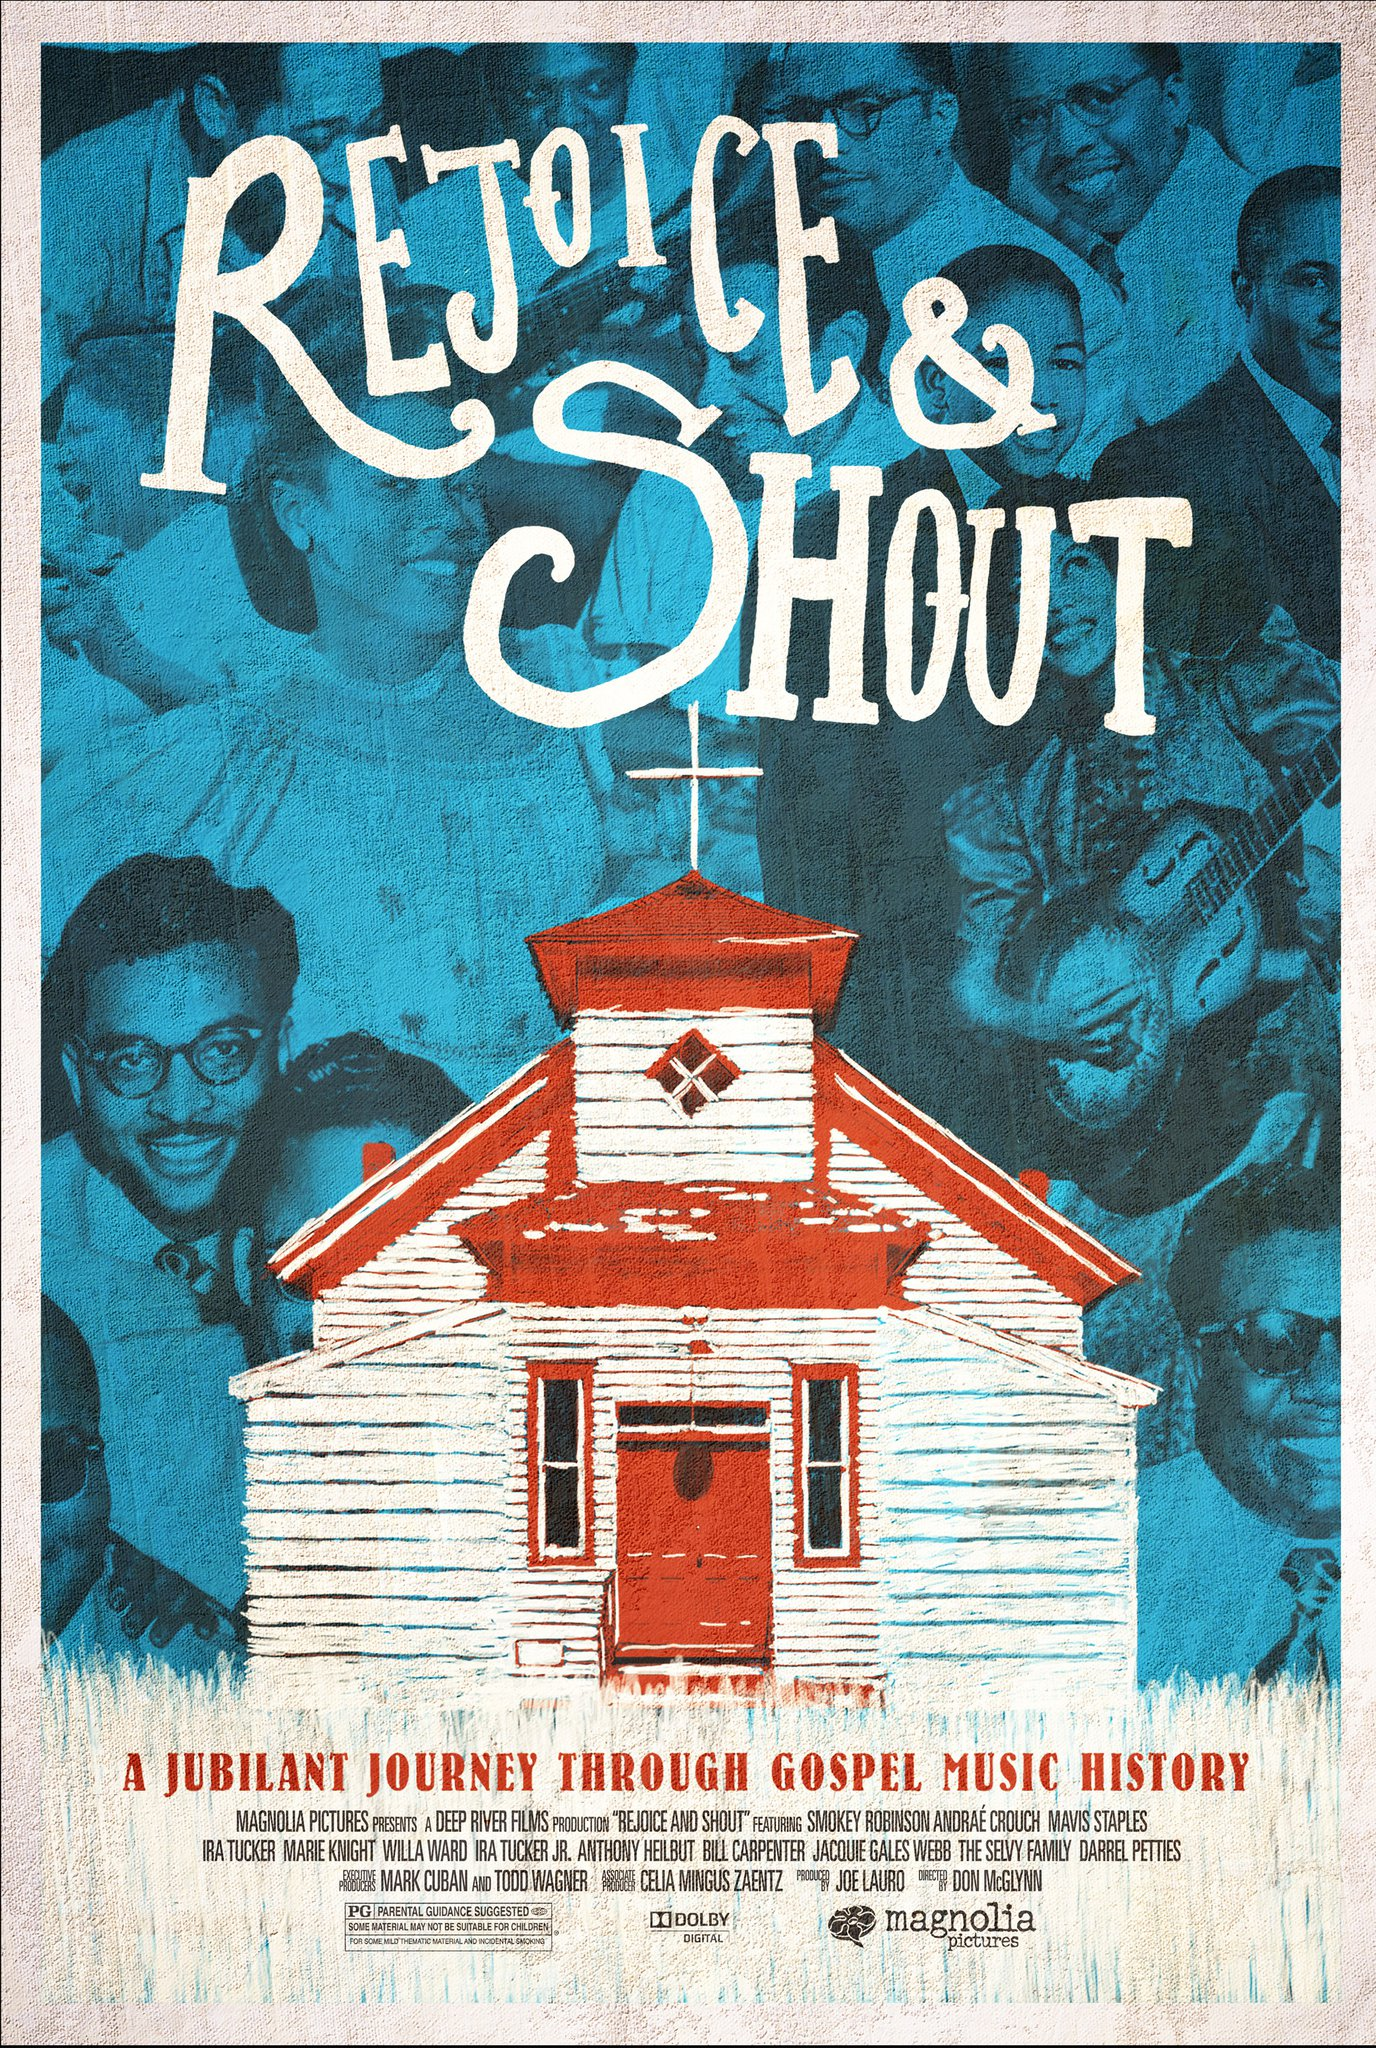 Rejoice and Shout: A Jubilant Journey Through Gospel Music History